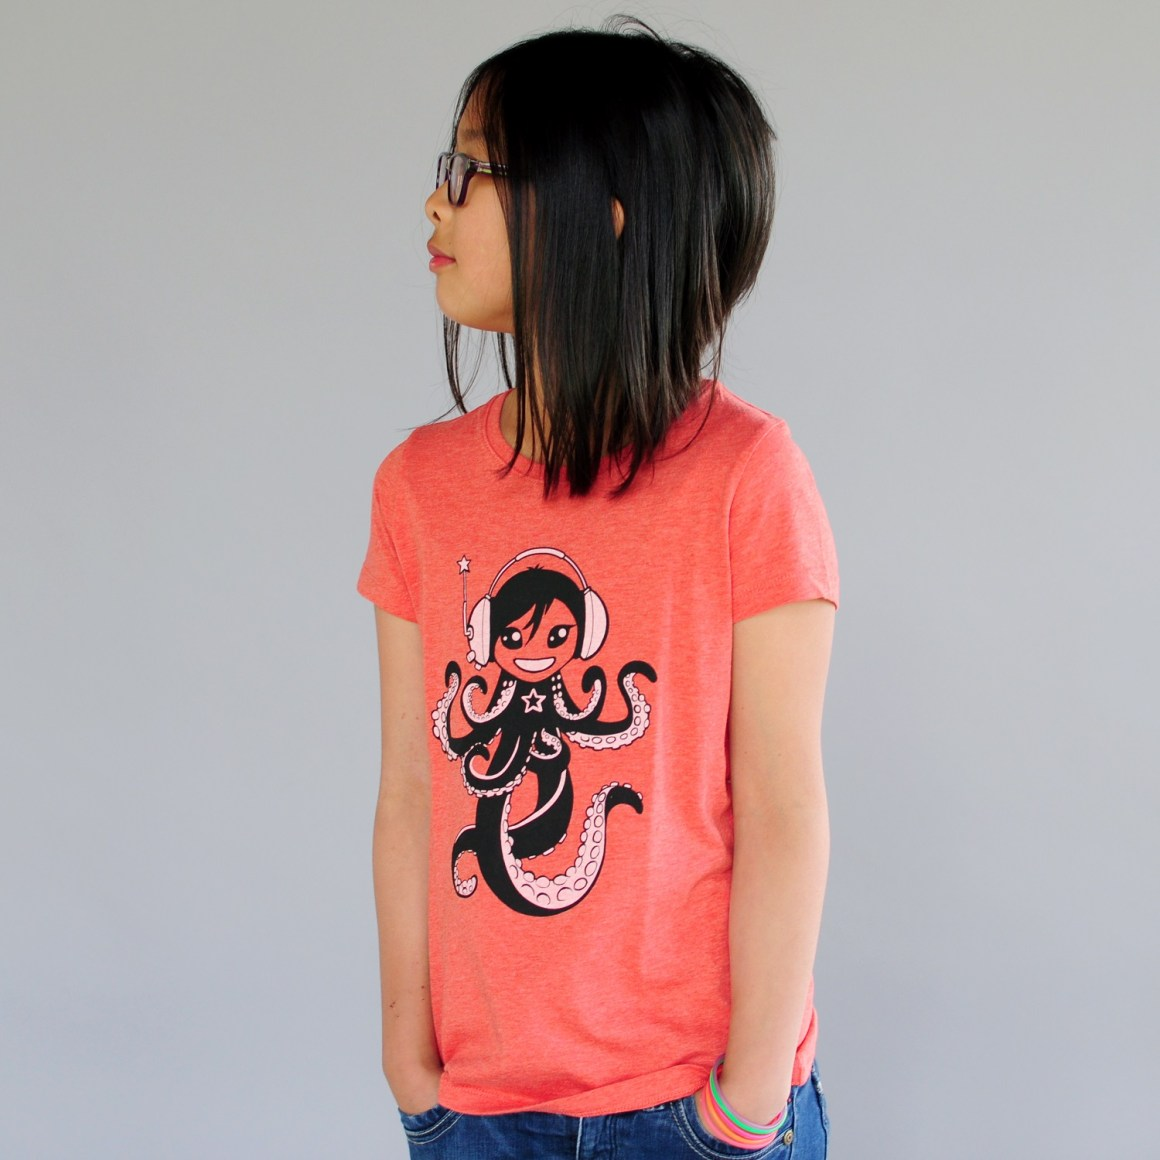 Octogirl T-shirt